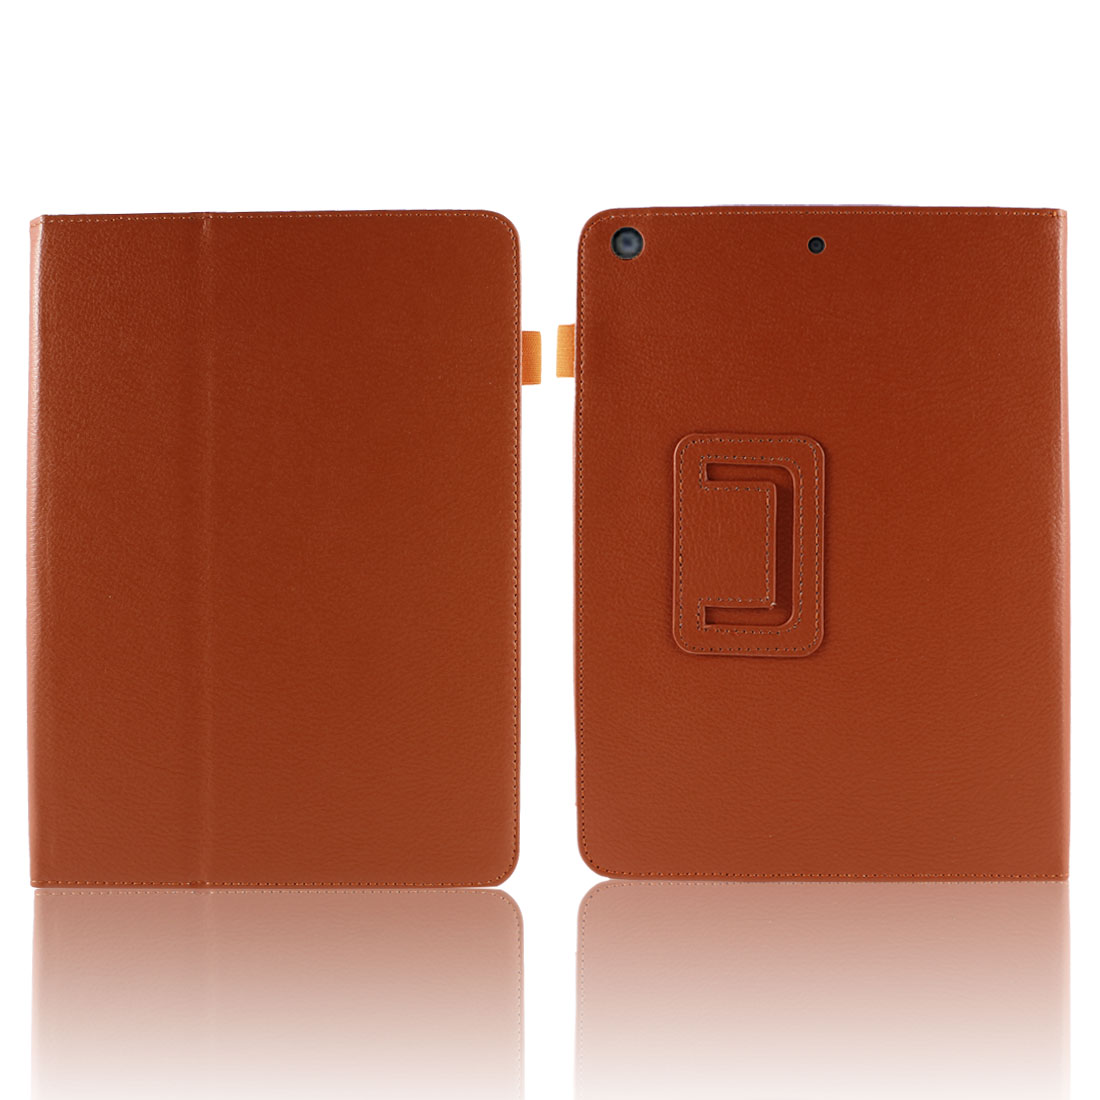 Orange PU Leather Wake up Sleep Flip Case Smart Cover Stand for iPad Air 5